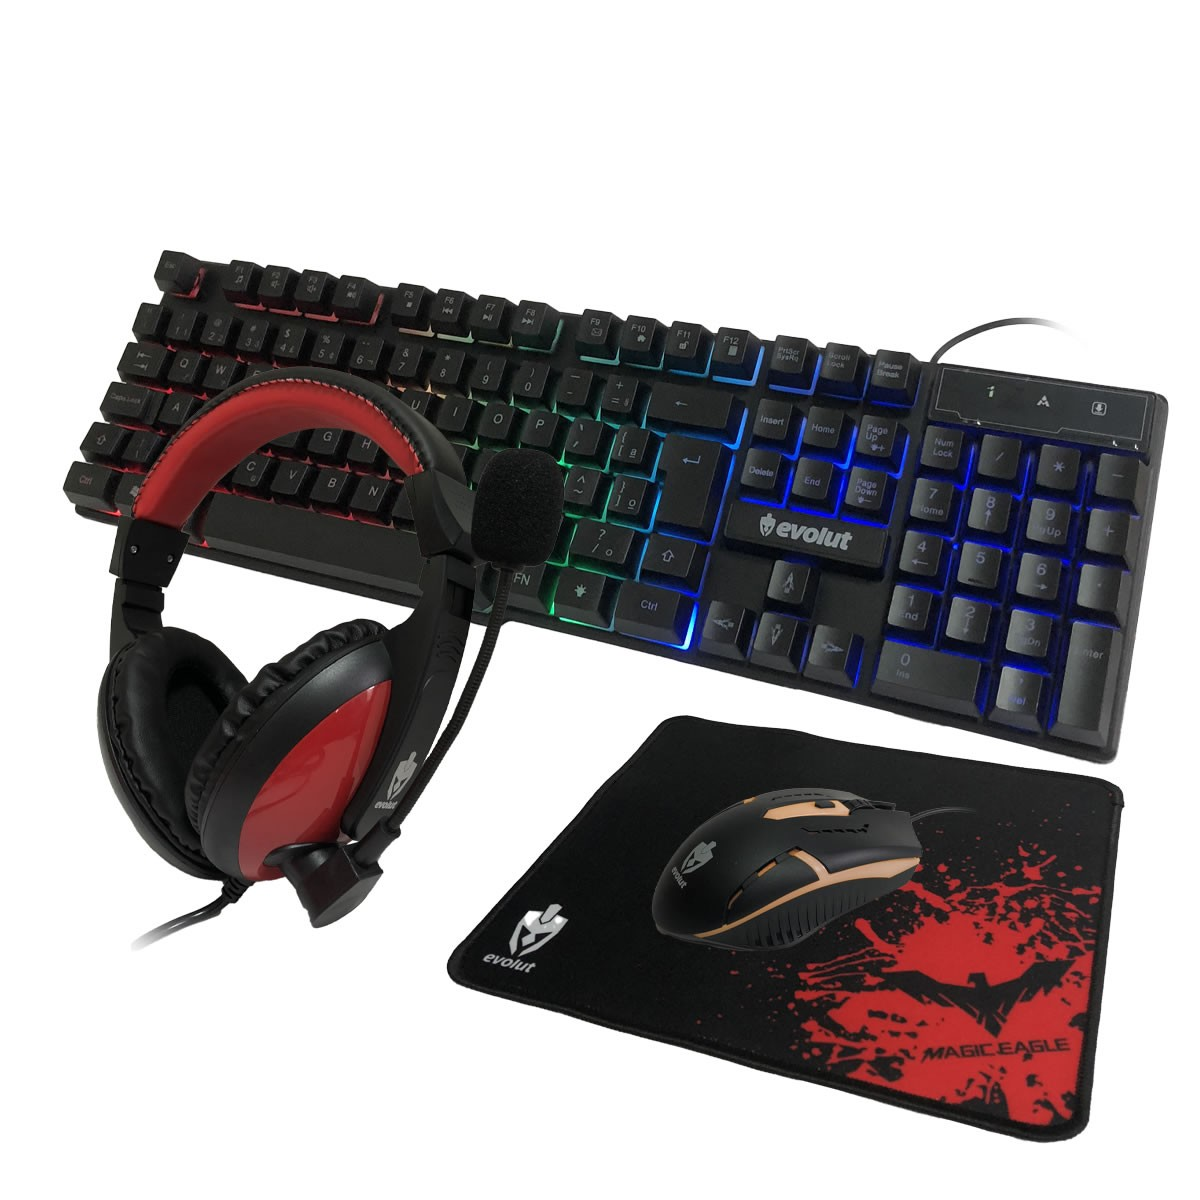 Kit Gamer Teclado Mouse Mousepad Headset Starter EG-51 Evolut